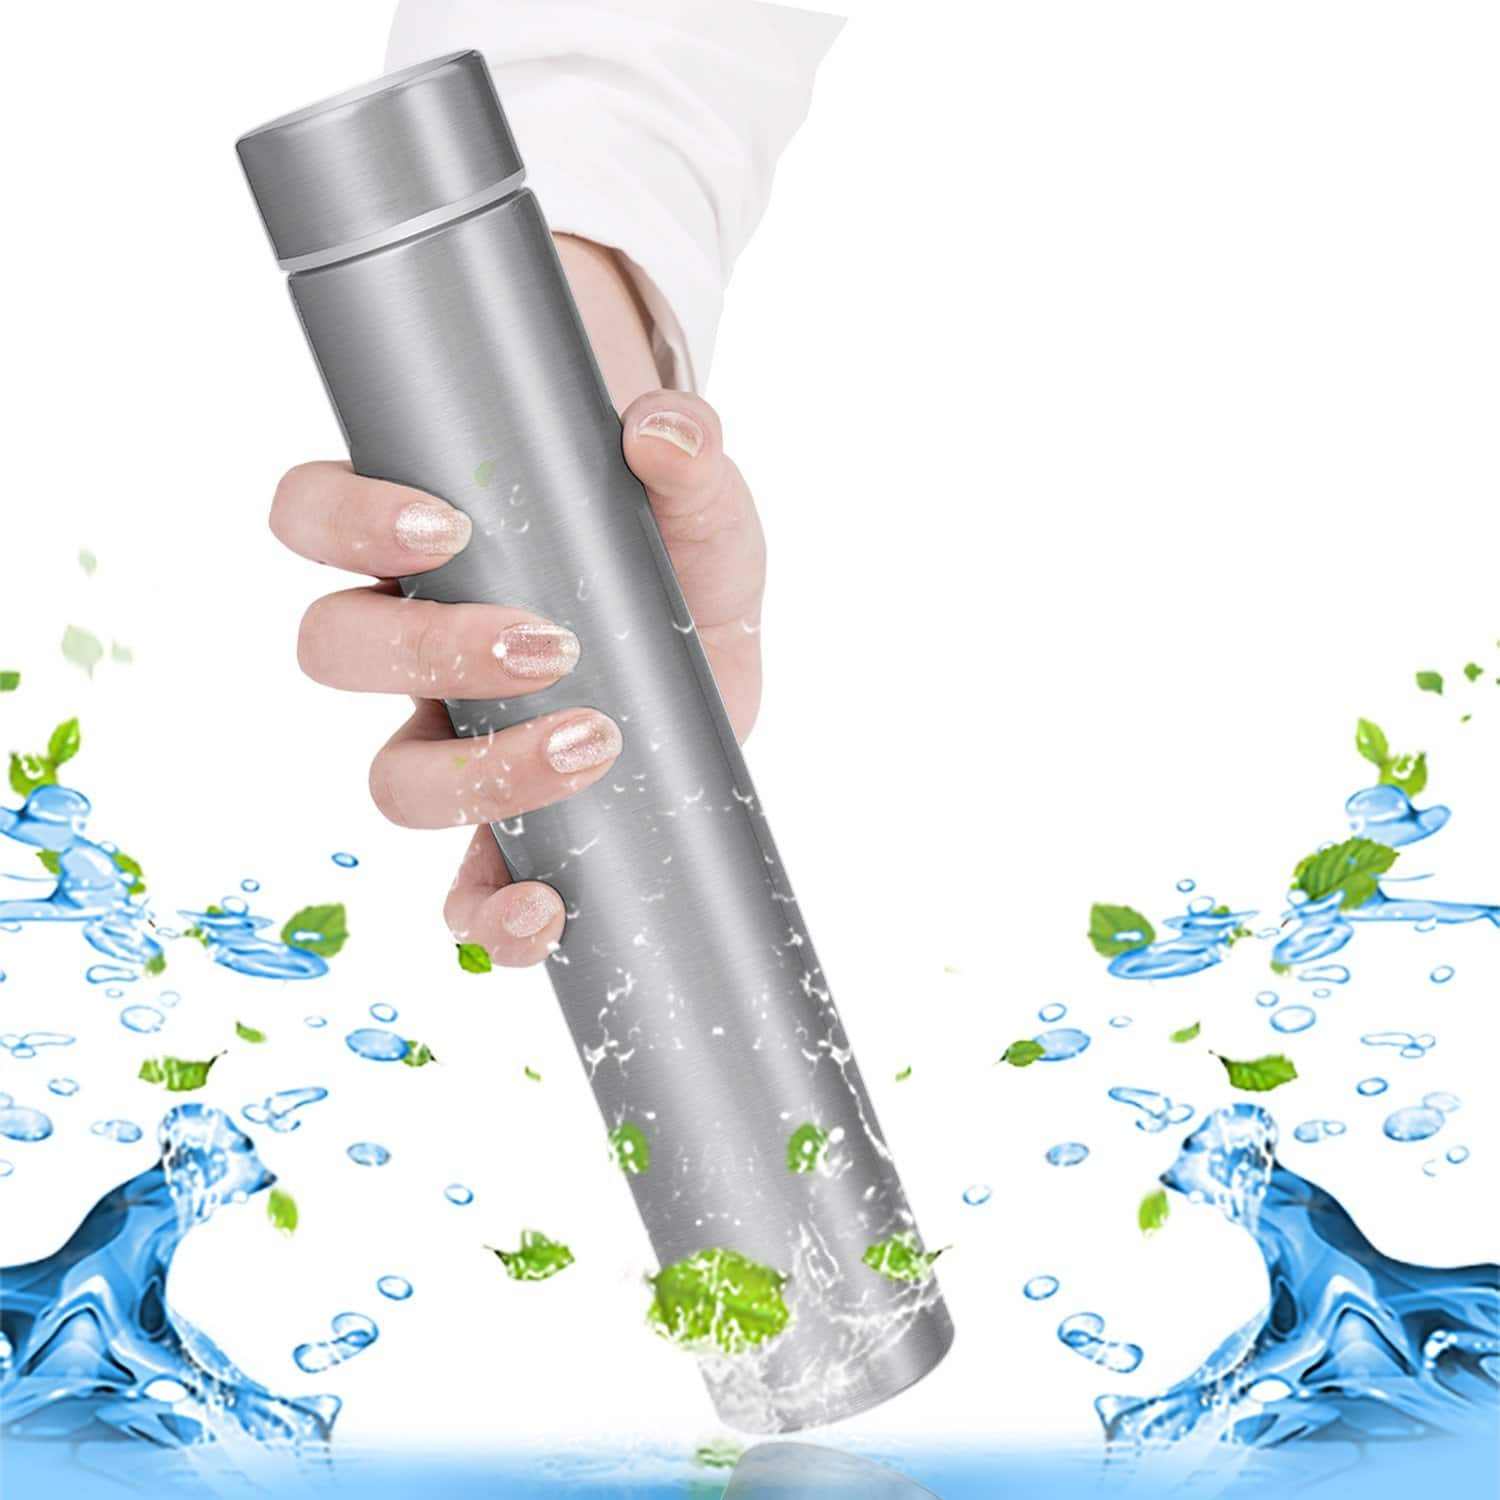 KepooMan 18/8 Stainless Steel Water Bottle Vacuum Insulated Thermos Leak Proof Vacuum Insulated Double-Walled Thermos Flask for Hot and Cold Beverages 250ml(8oz) (Silver) $7.79 AC